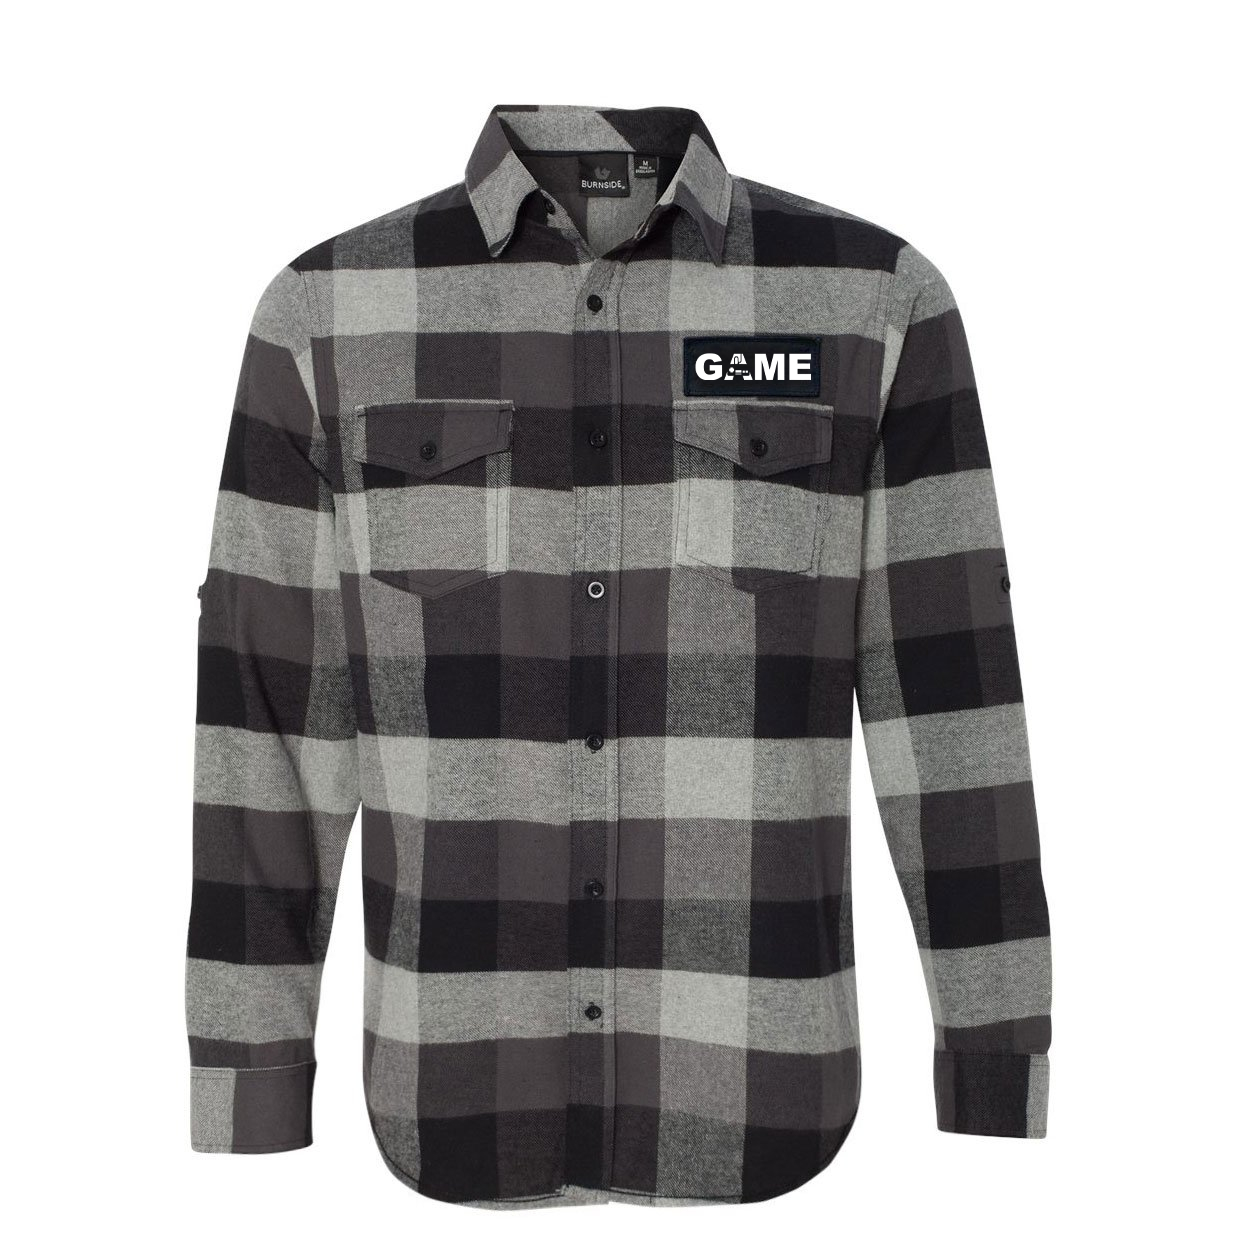 Game Controller Logo Classic Unisex Long Sleeve Woven Patch Flannel Shirt Black/Gray (White Logo)